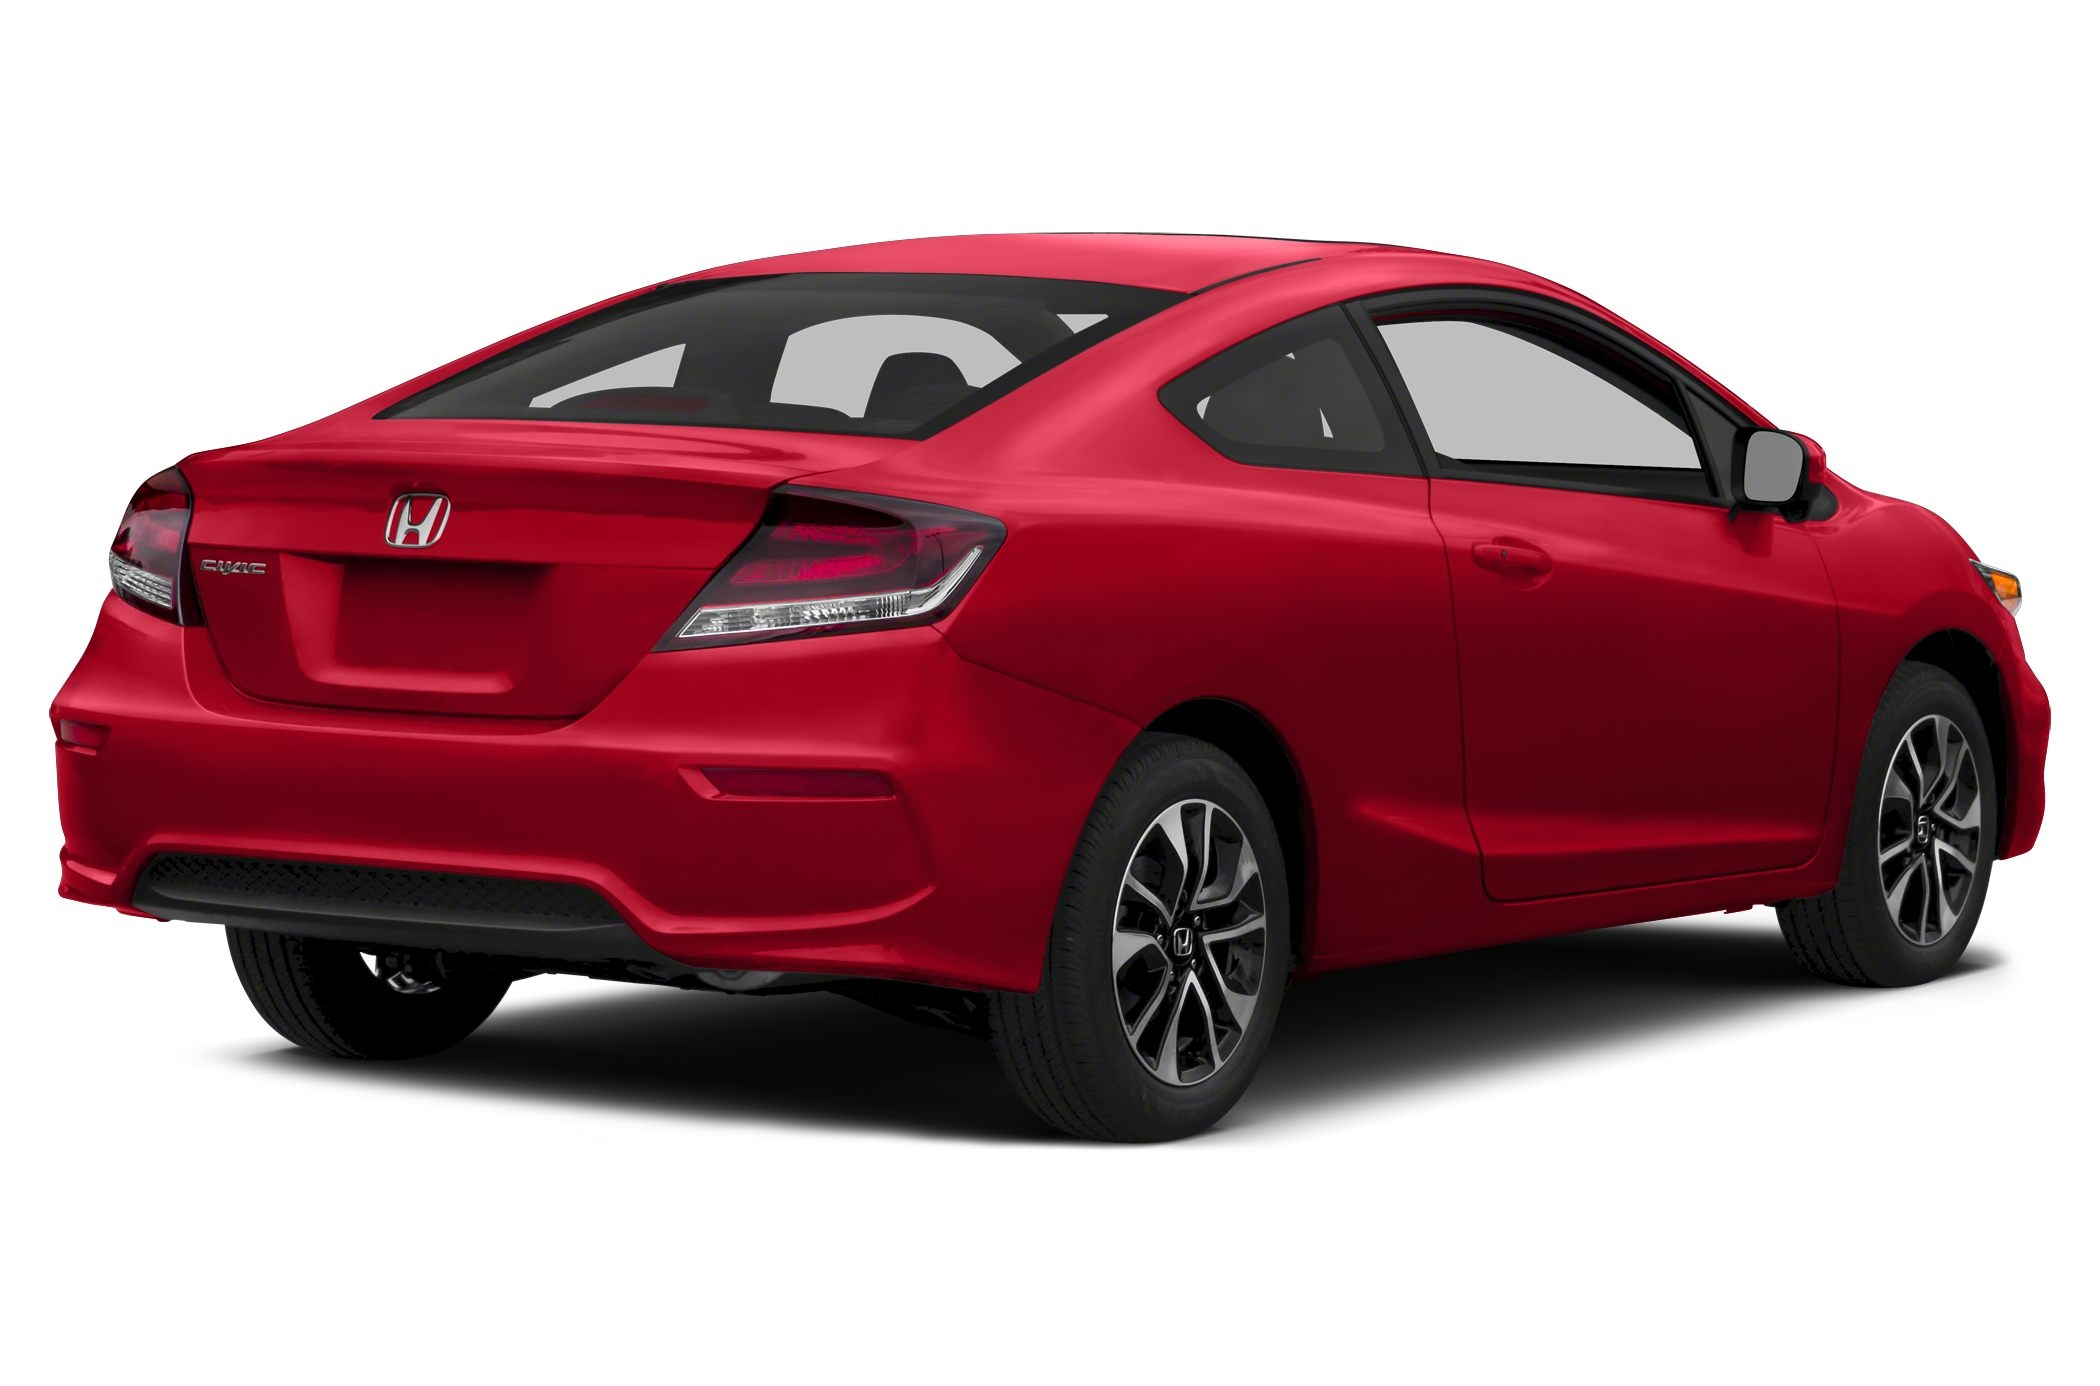 2015 honda civic price photos reviews amp features 2015 honda civic invoice price